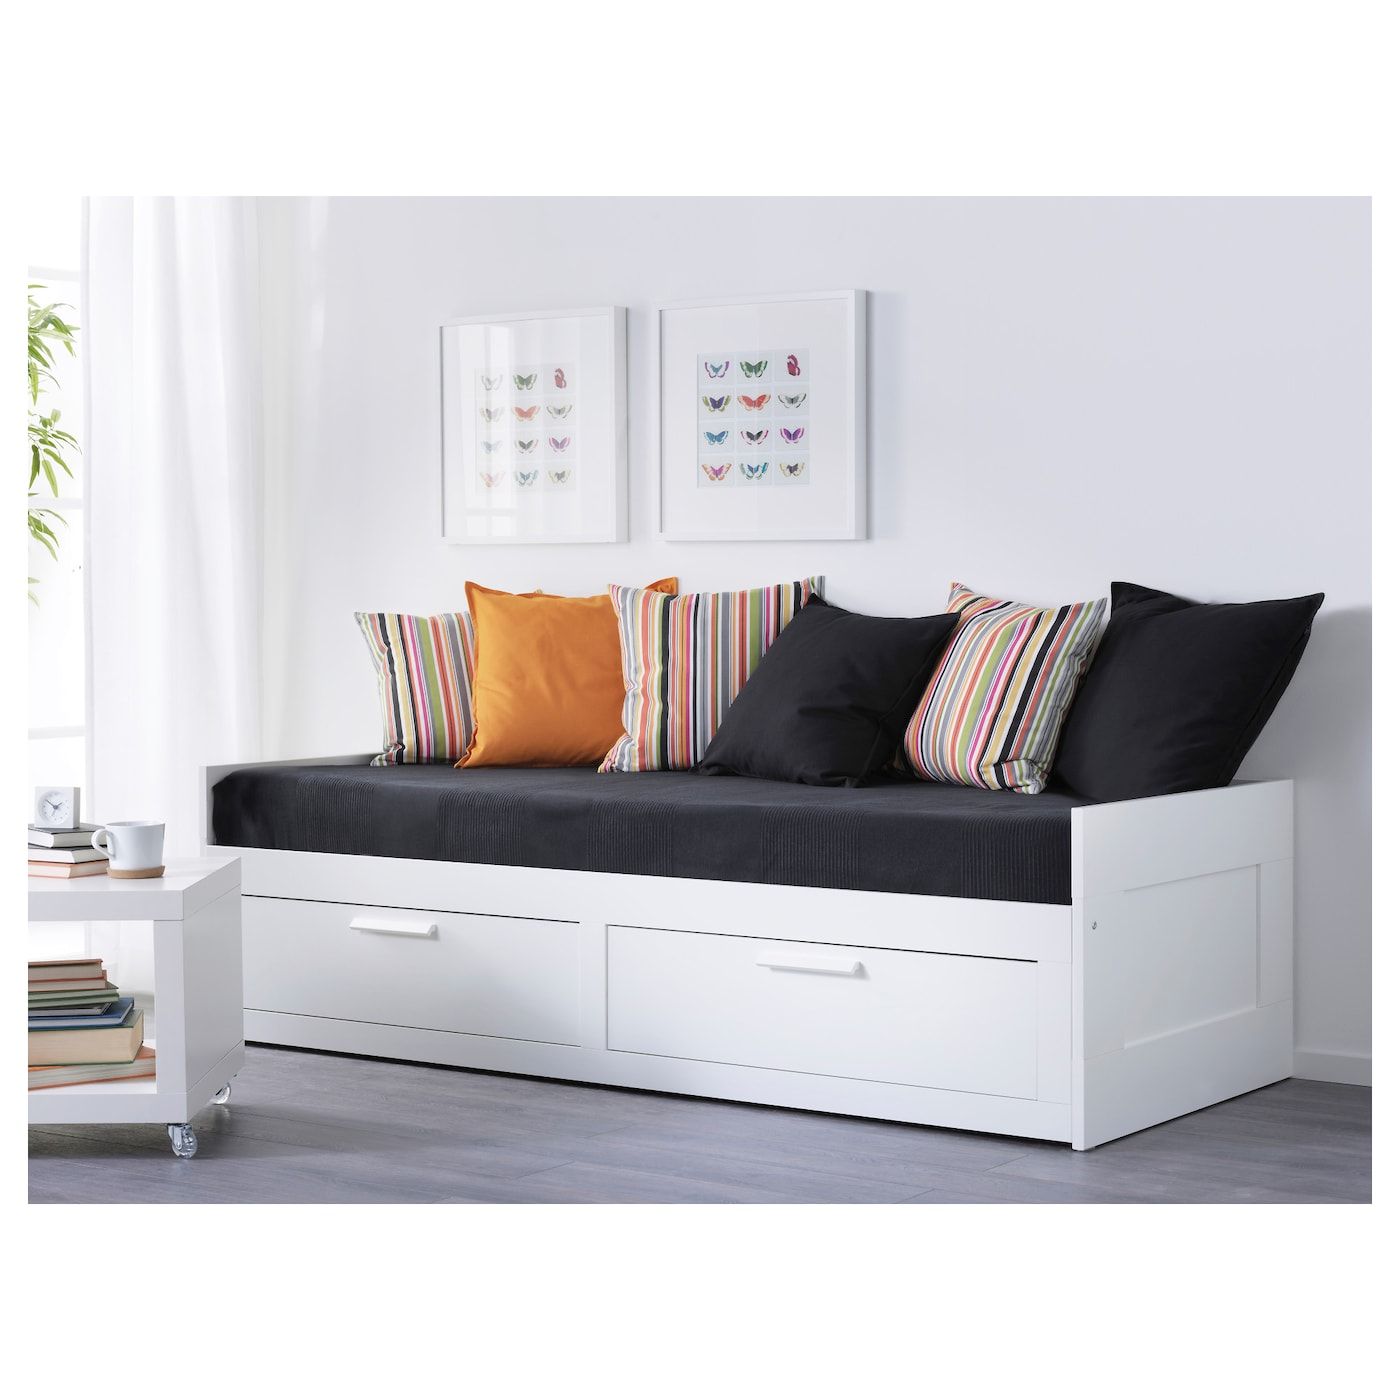 Brimnes day bed w 2 drawers 2 mattresses white moshult for Sofas para habitaciones juveniles